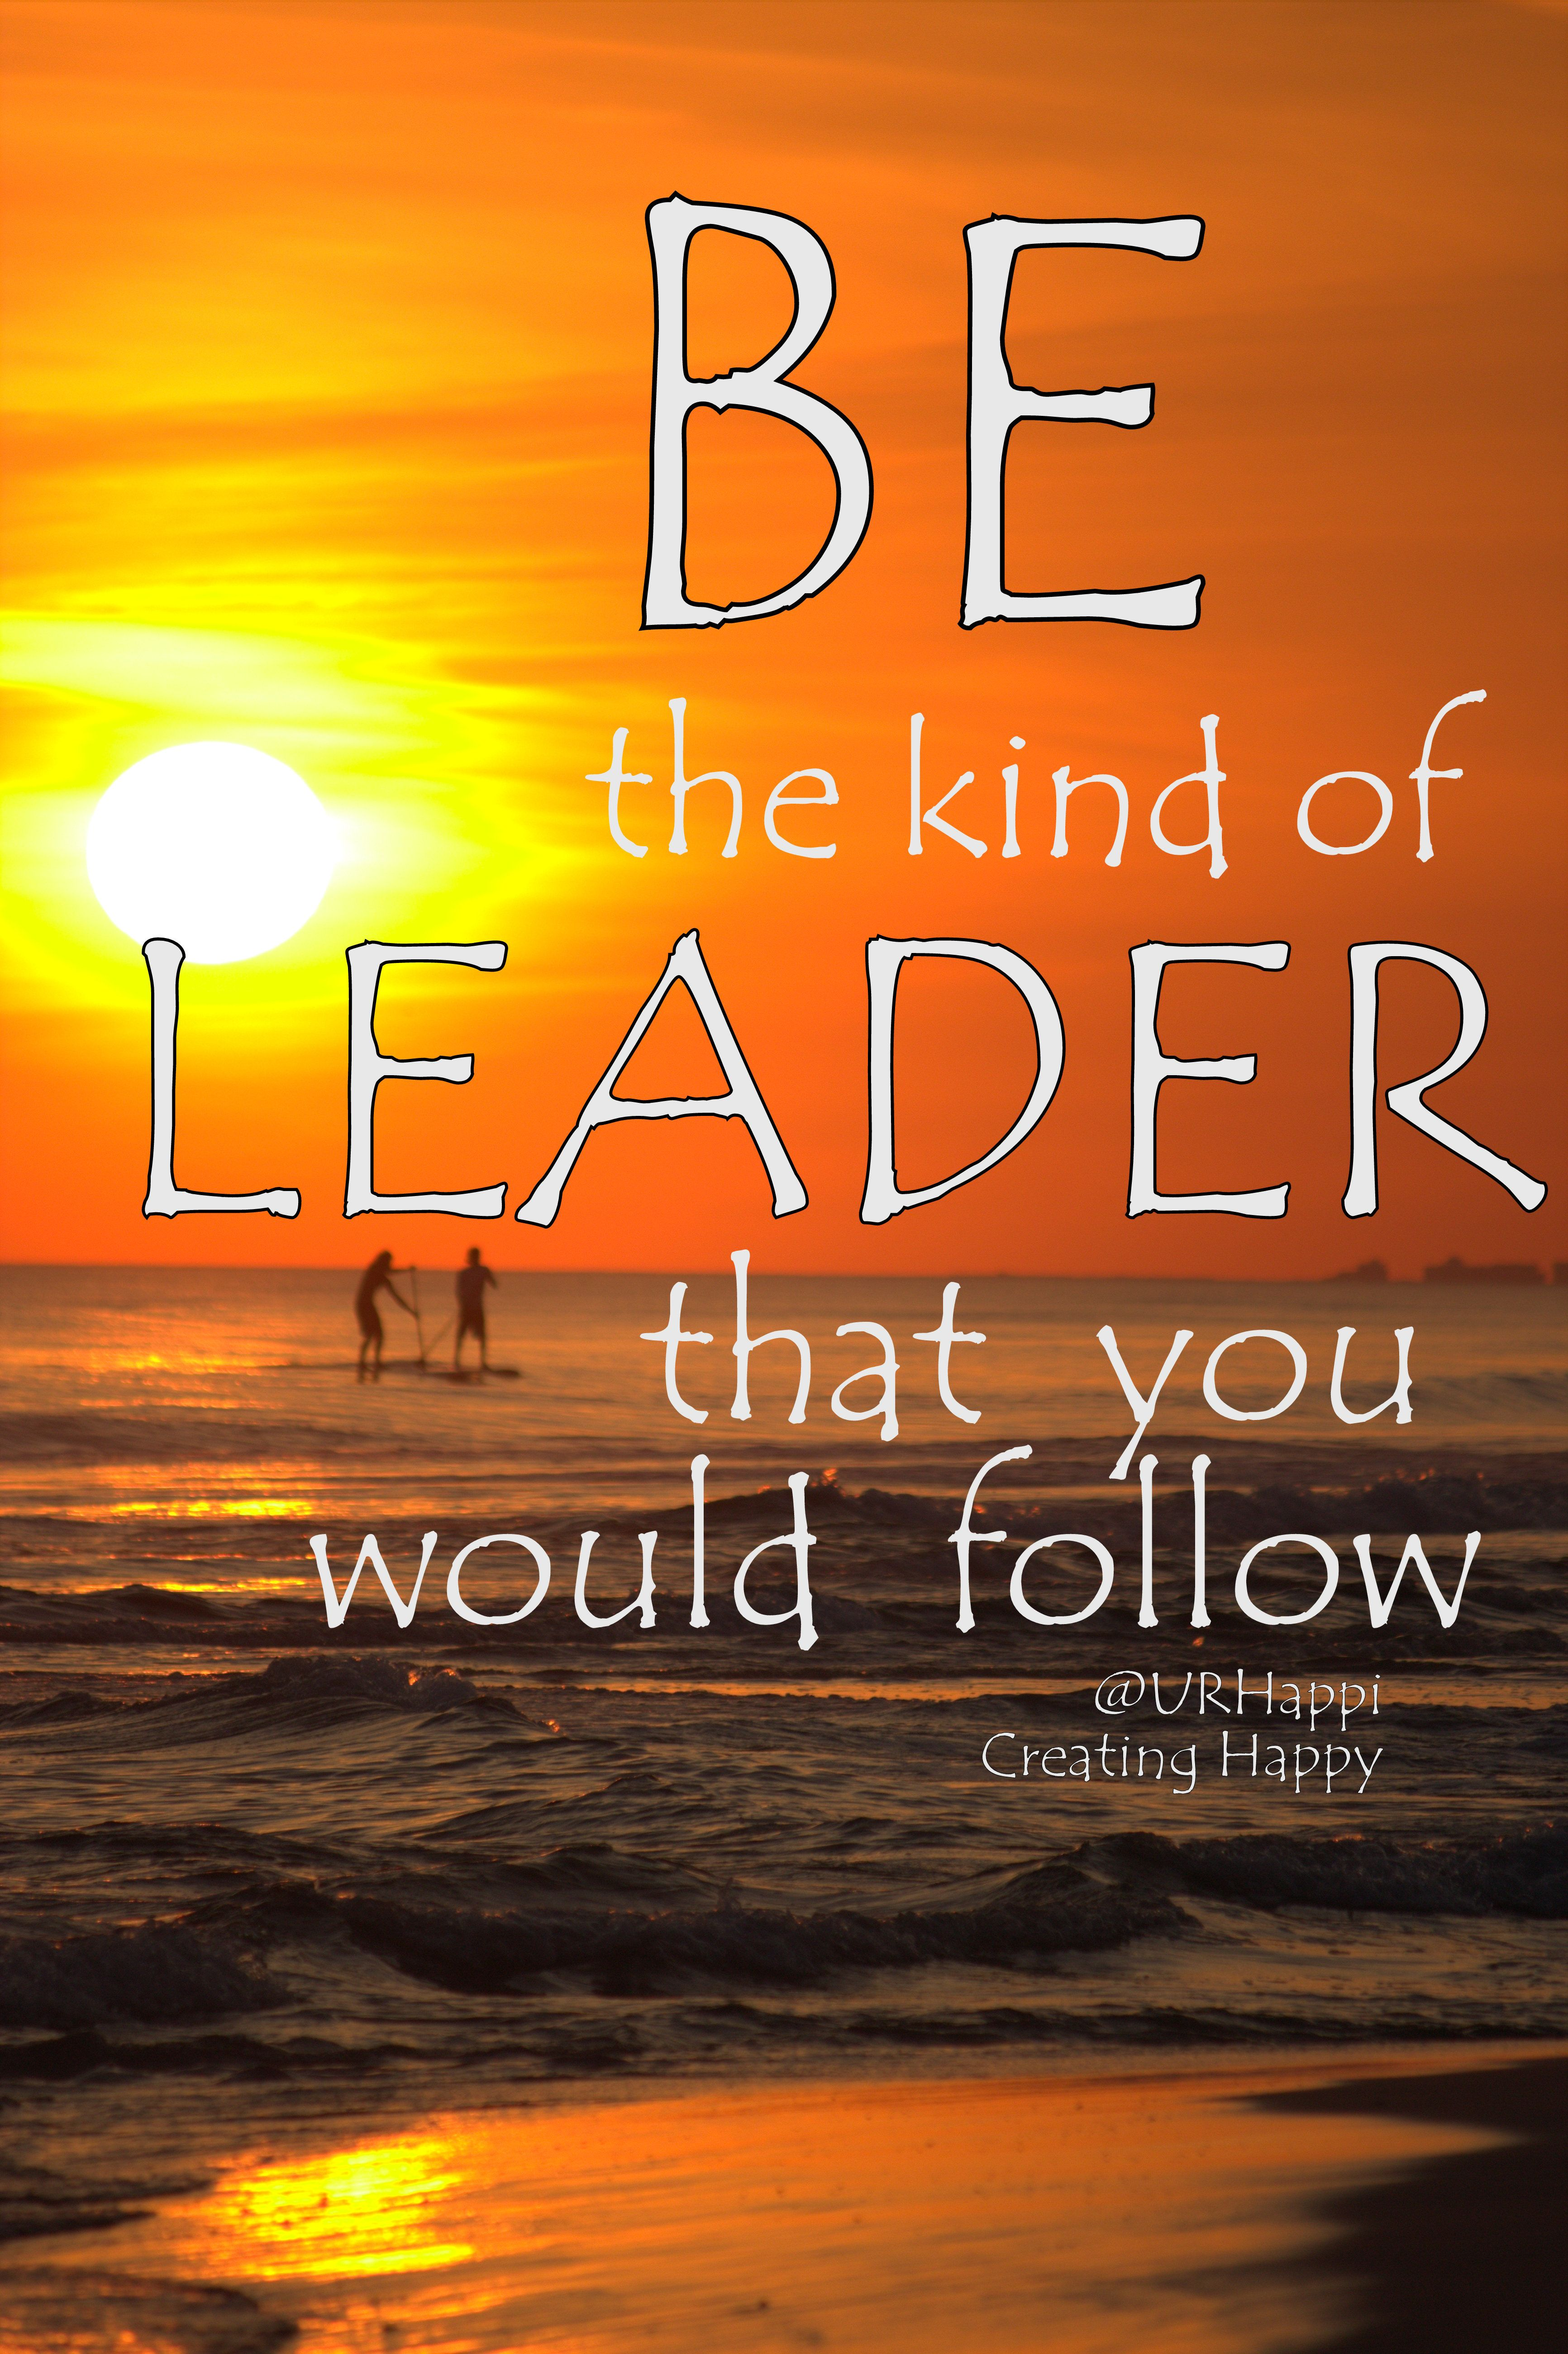 Quotes About Florida Stunning Be The Kind Of Leader That You Would Follow #creatinghappy . Design Inspiration